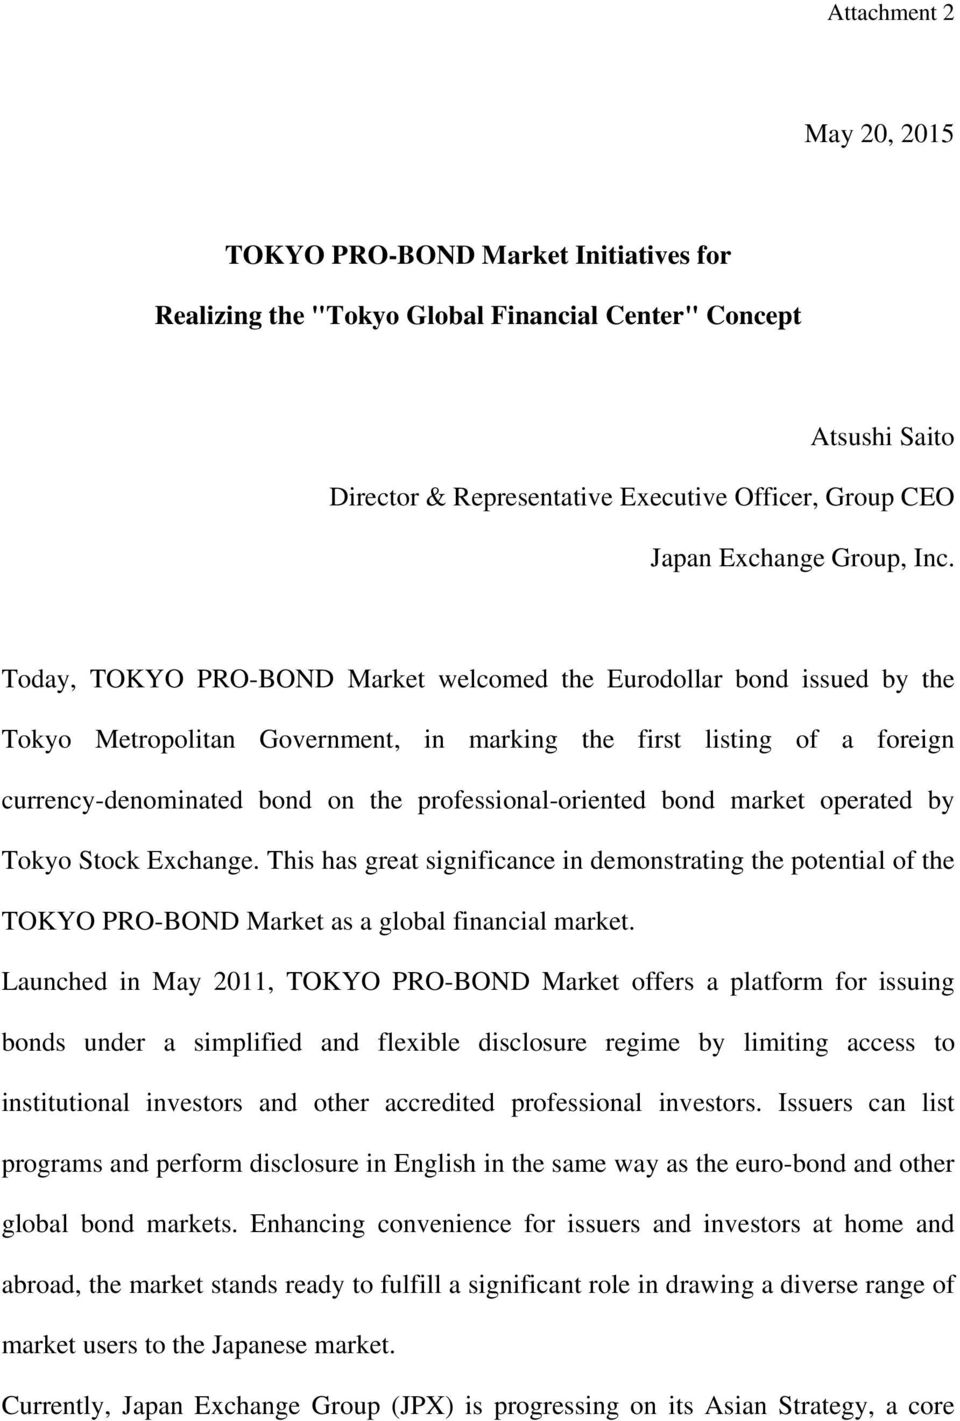 Today, TOKYO PRO-BOND Market welcomed the Eurodollar bond issued by the Tokyo Metropolitan Government, in marking the first listing of a foreign currency-denominated bond on the professional-oriented